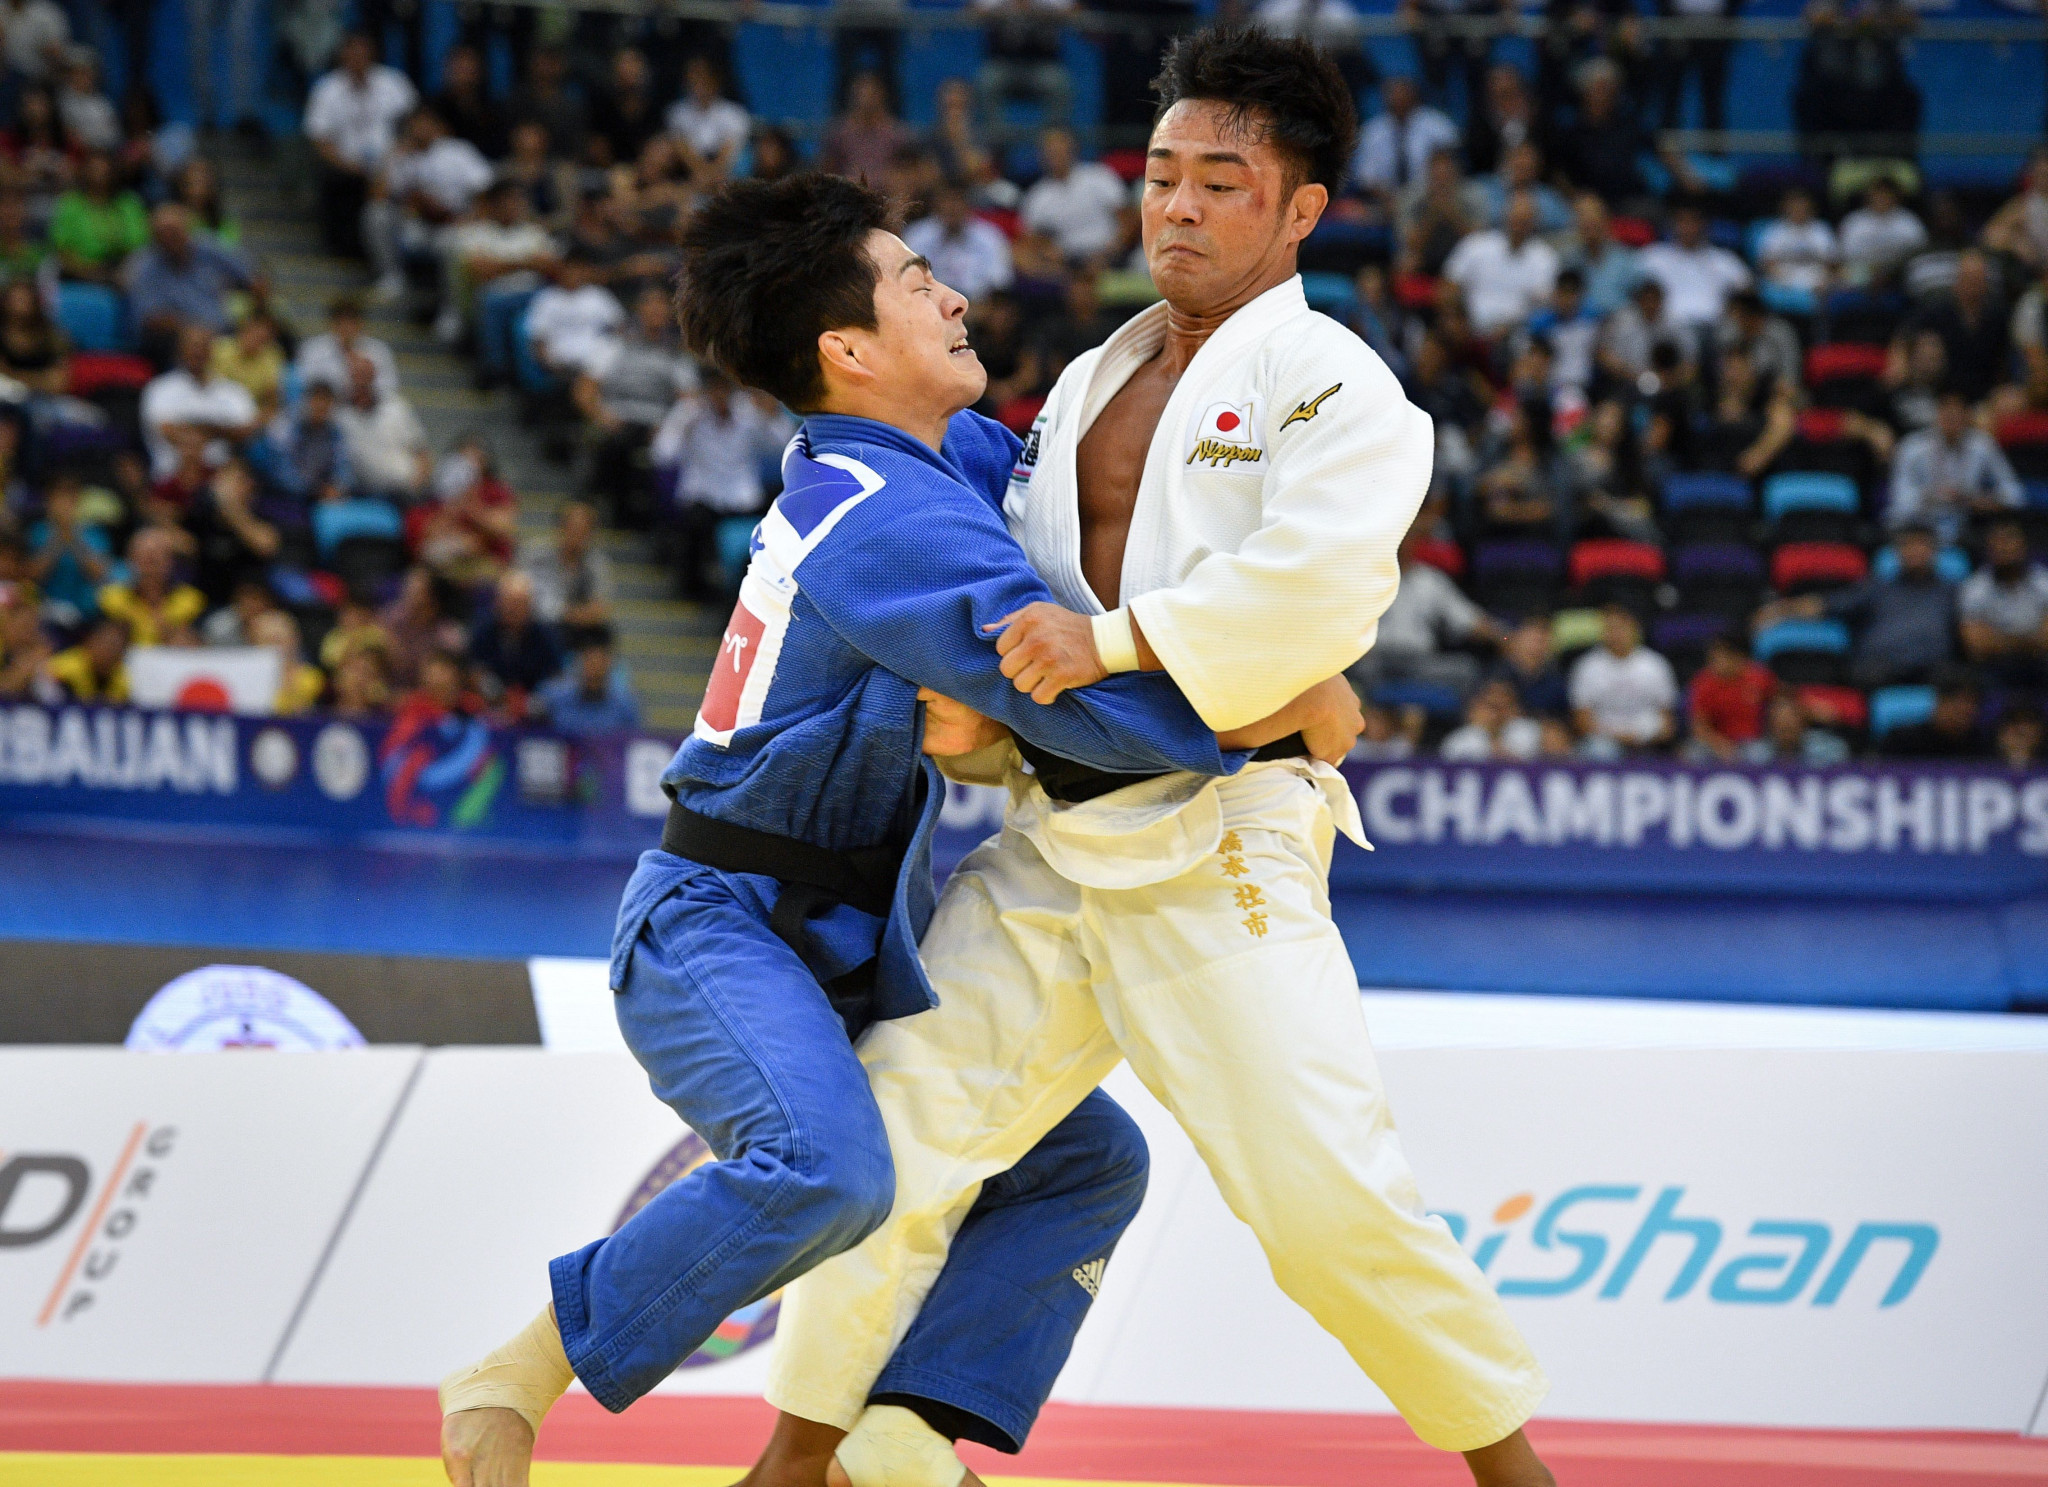 Two new champions crowned on day three of IJF World Championships